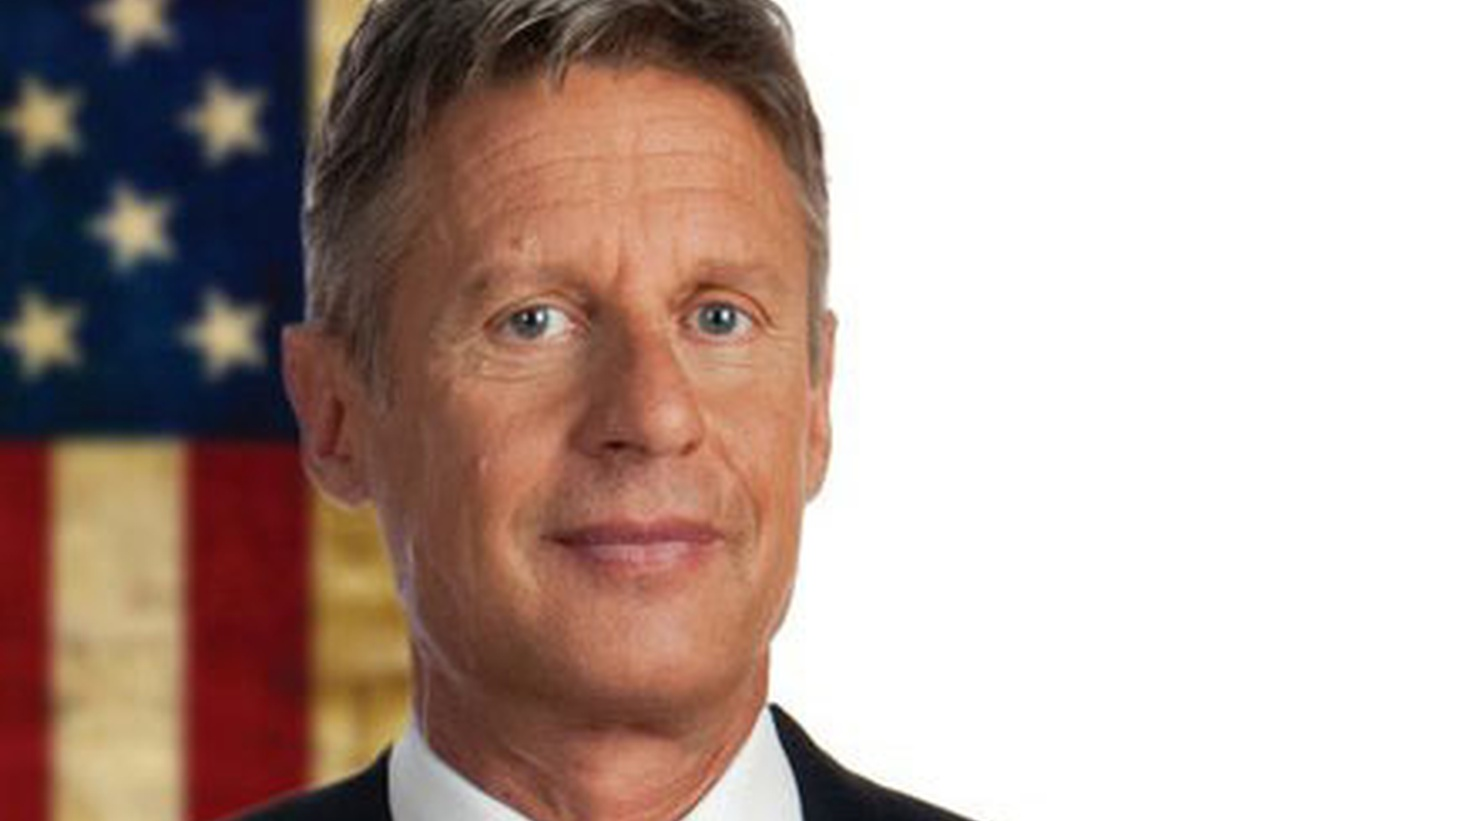 This year's Libertarian presidential candidate is Gary Johnson, former Republican Governor of New Mexico. Earlier this month on MSNBC, he failed to answer what seemed like an obvious question about Aleppo.